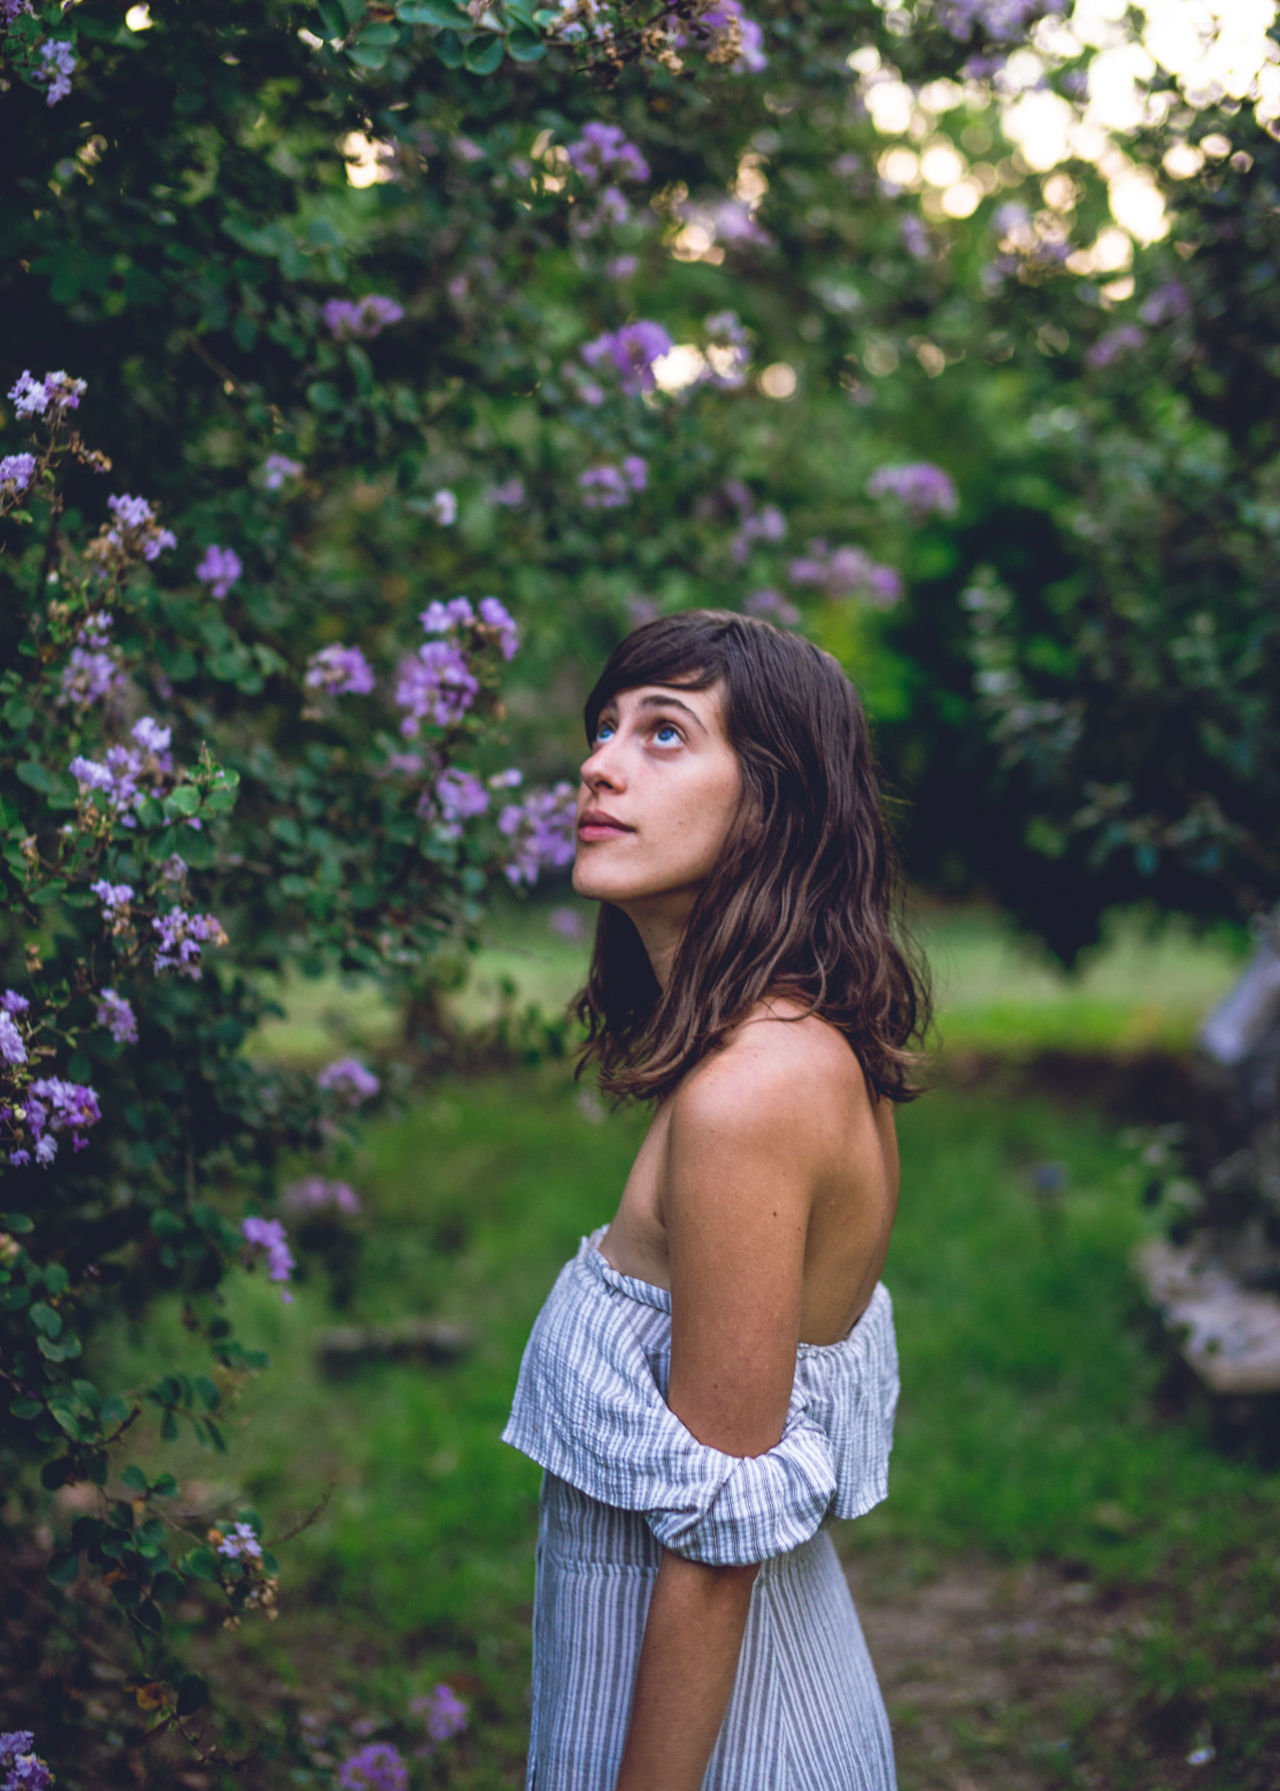 Beautiful Nature Beautiful Woman Beauty In Nature Day Daydreaming Flower Flowers Flowers_collection Focus On Foreground Girl Holiday Leisure Activity Lifestyles Love Lovely Girl One Person Outdoors Purple Real People Standing Travel Travel Photography Tree Young Adult Young Women